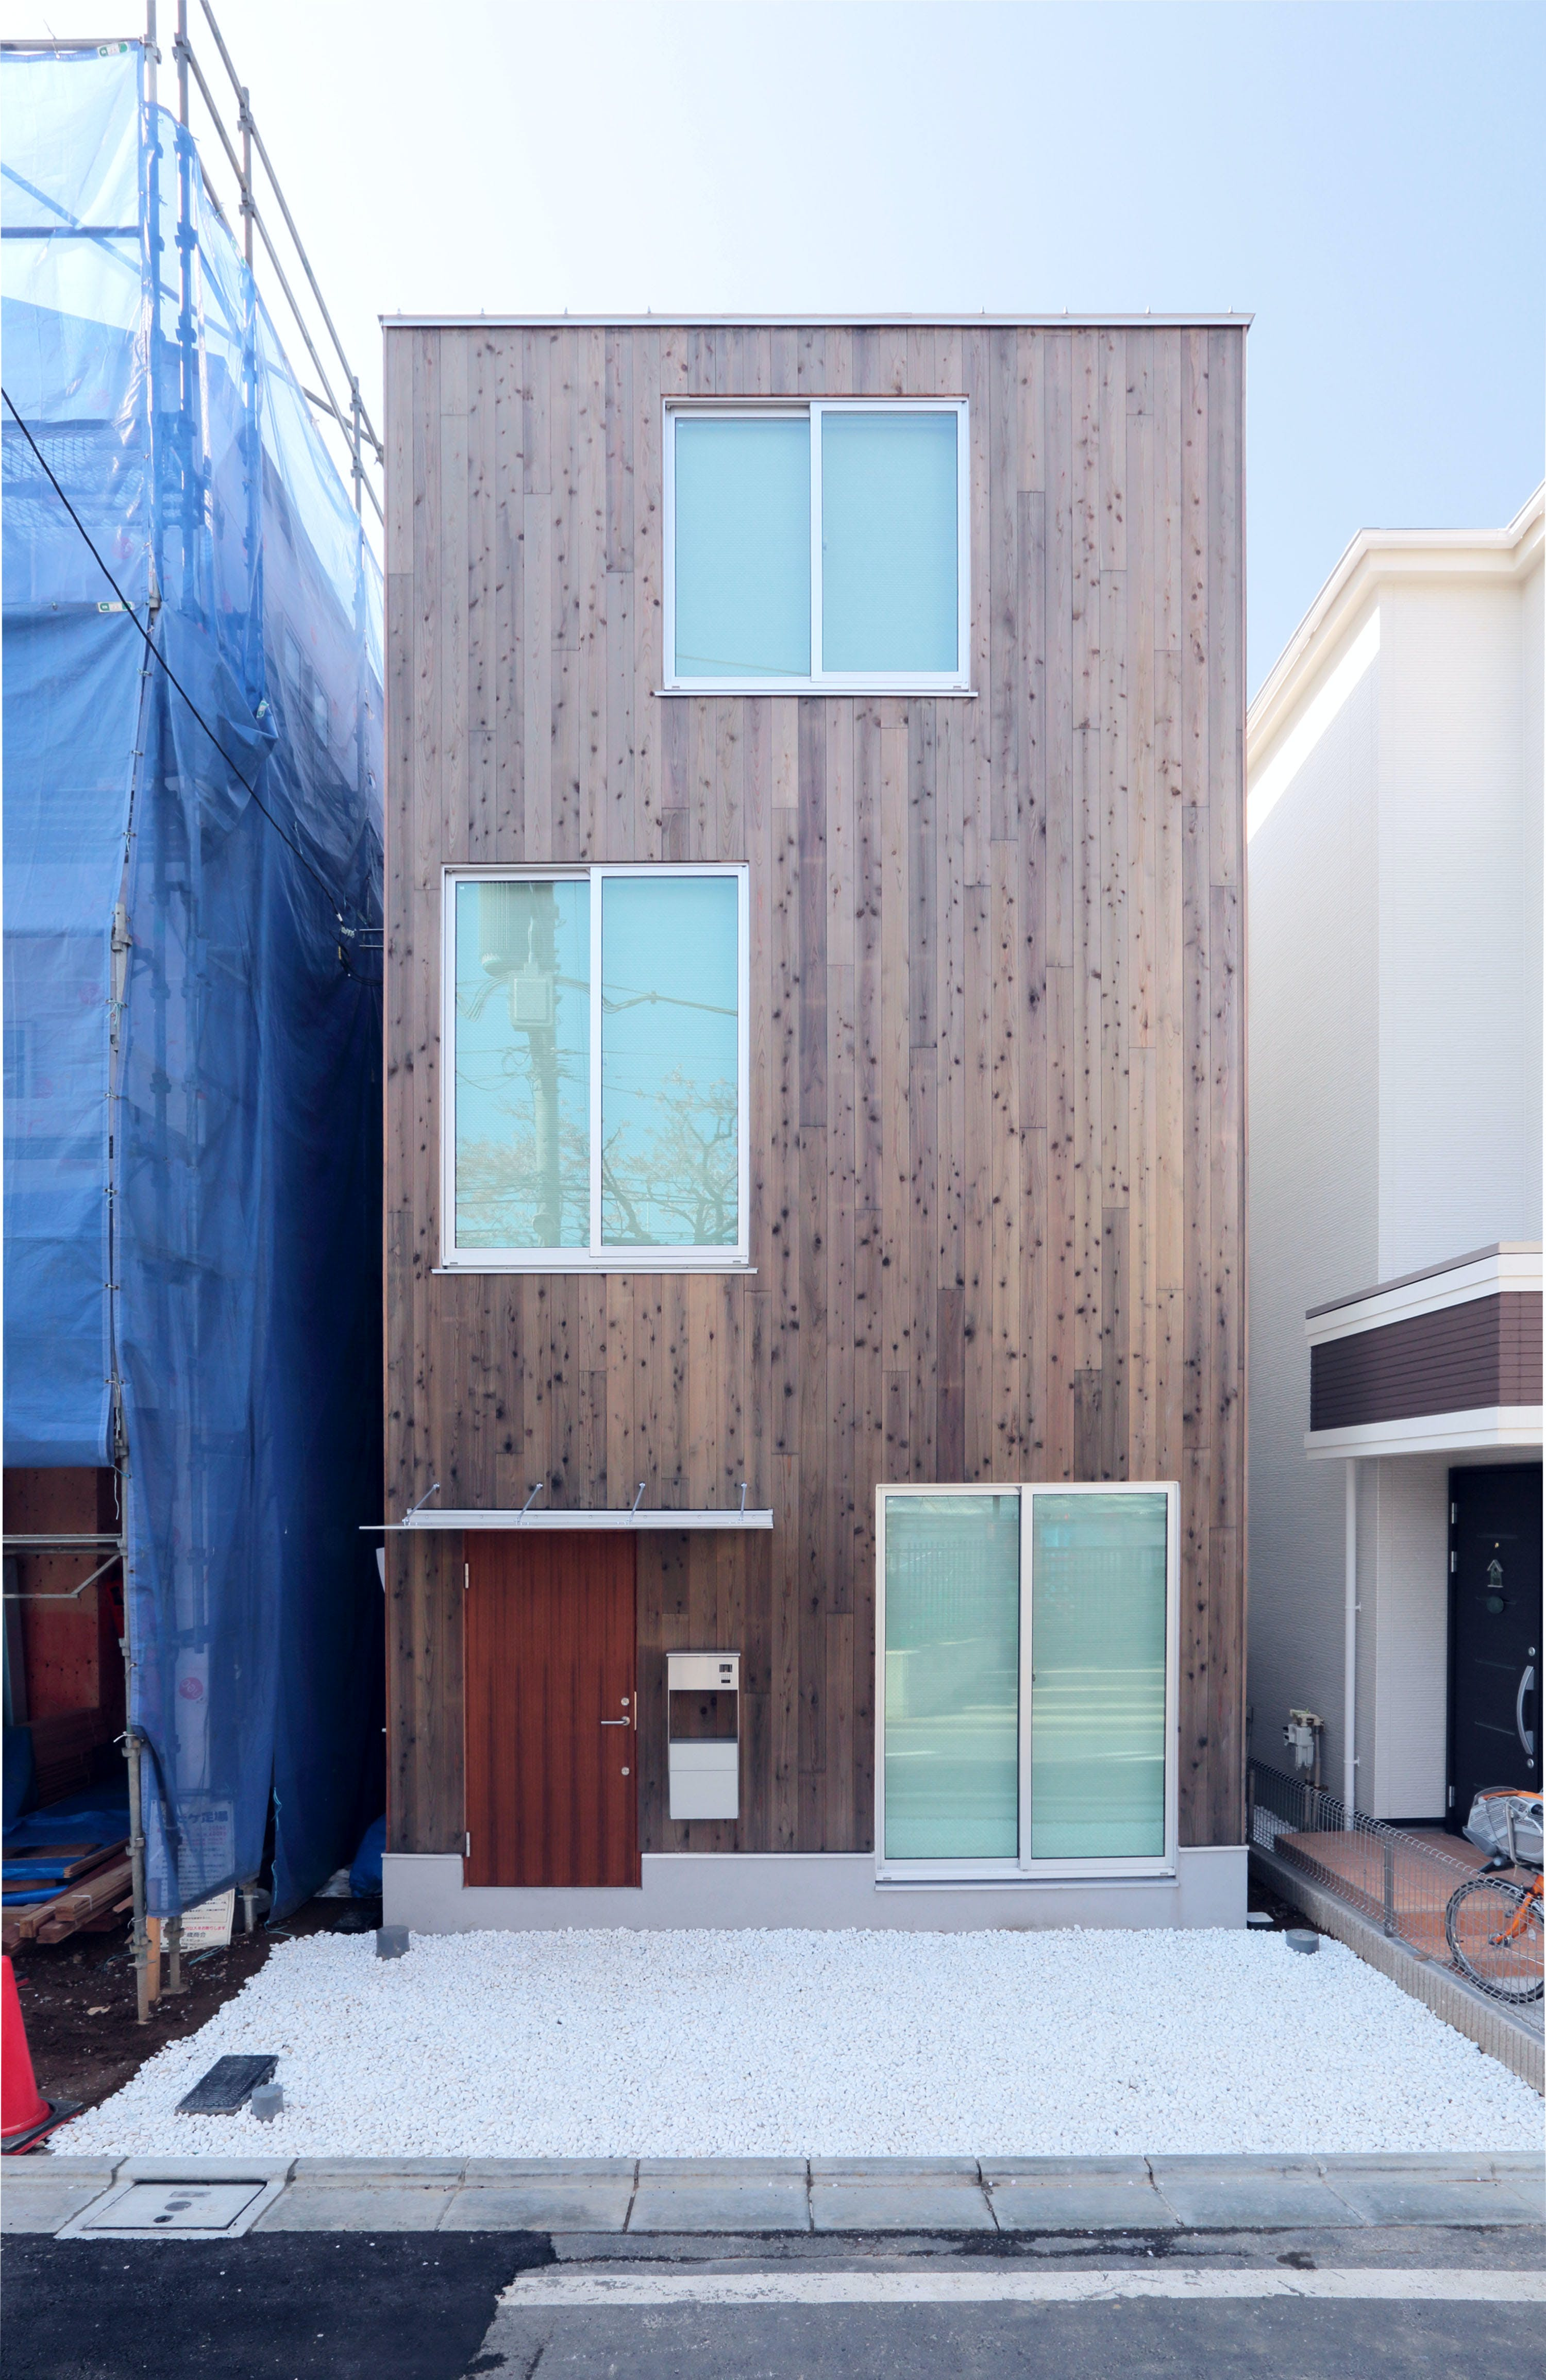 Muji's prefab Vertical House now available for Japanese residences on eco-friendly small home designs, gable roof home designs, garage home designs, home construction designs, building home designs, home plans designs, landscaping home designs, patio home designs, cement home designs, wood home designs, industrial home designs, timber home designs, residential home designs, steel home designs, frame home designs, floor home designs, kit home designs, flooring home designs, manufactured home designs, panelized home designs,